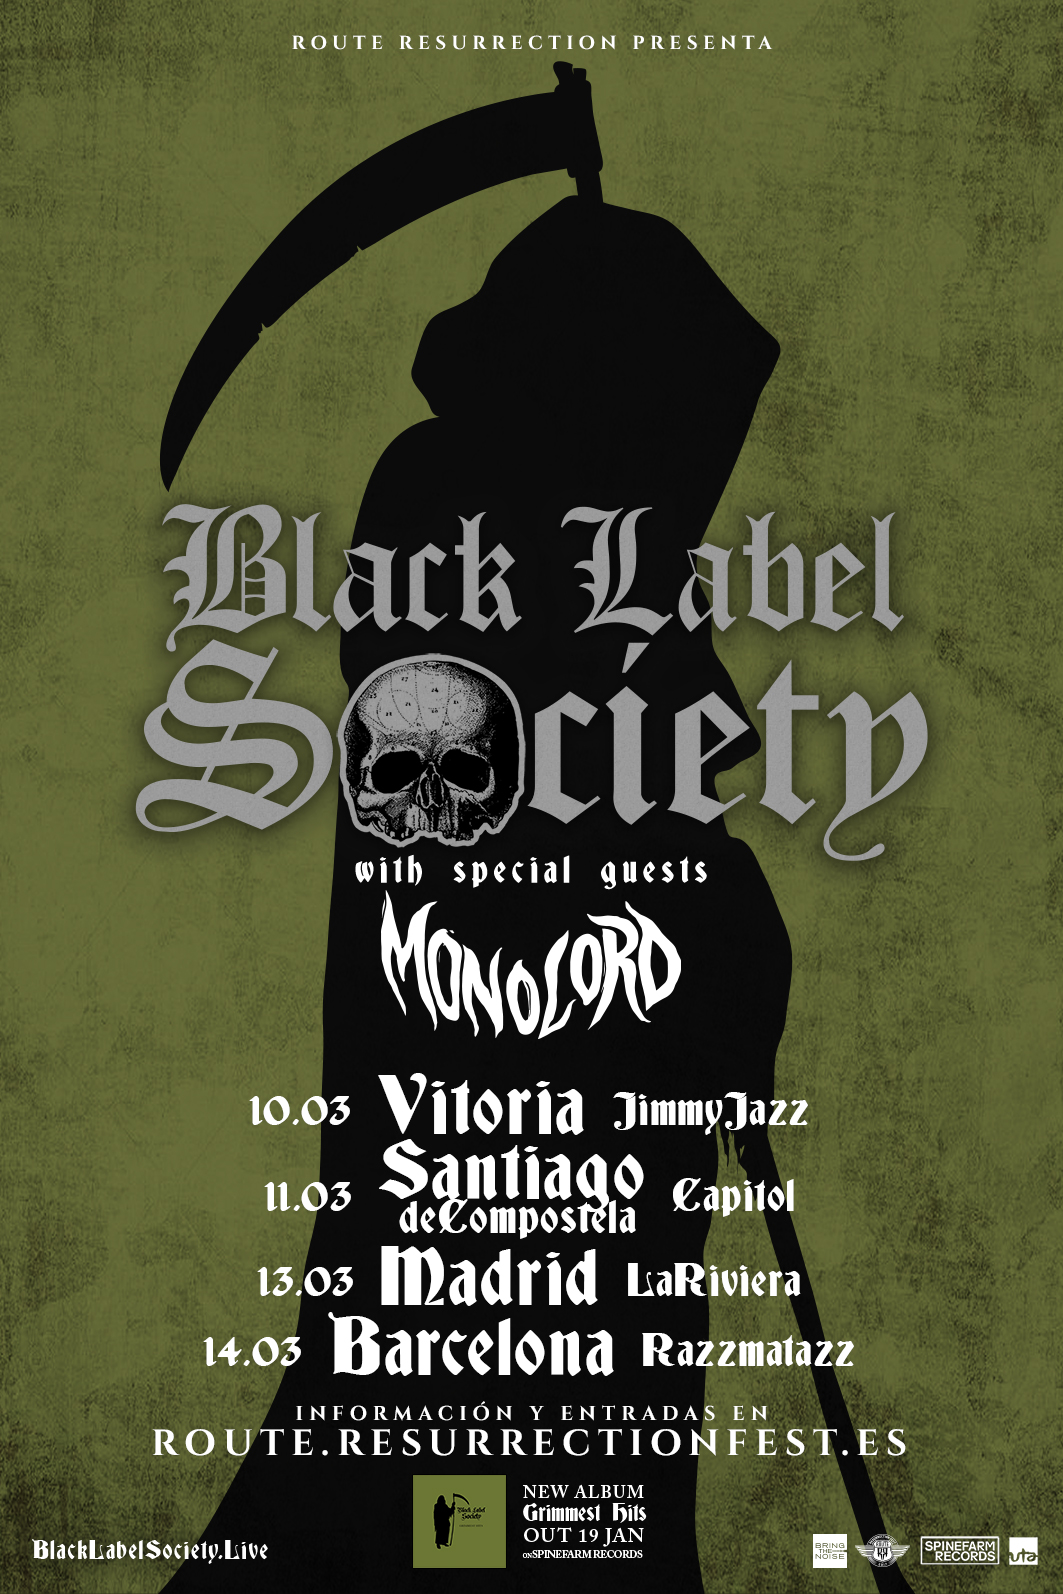 https://i2.wp.com/www.resurrectionfest.es/media/Route-Resurrection-2018-Black-Label-Society-Poster-2.jpg